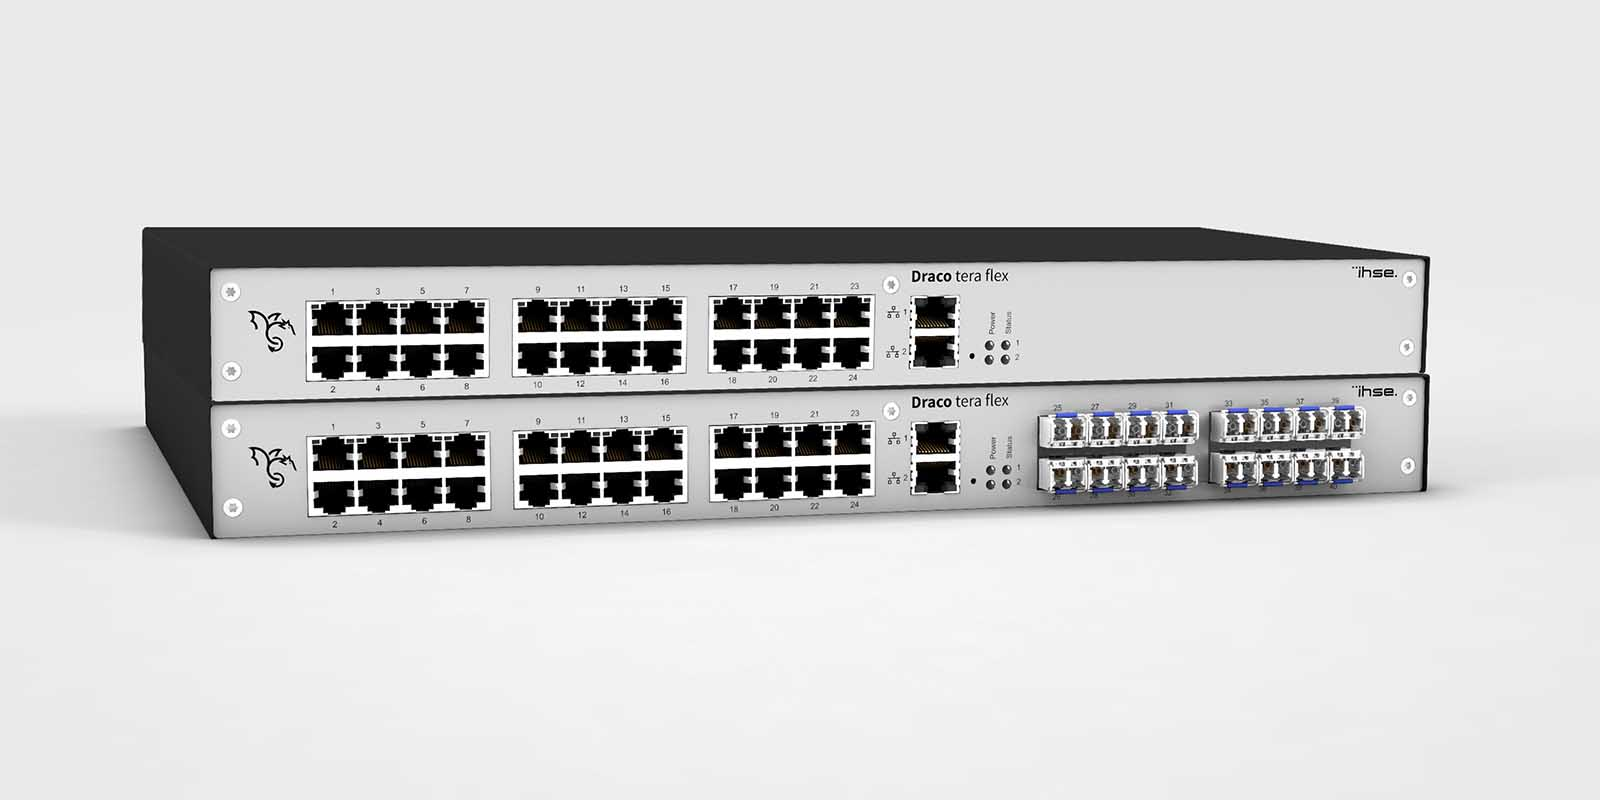 IHSE launches the new Draco Tera Flex series of KVM matrix switches